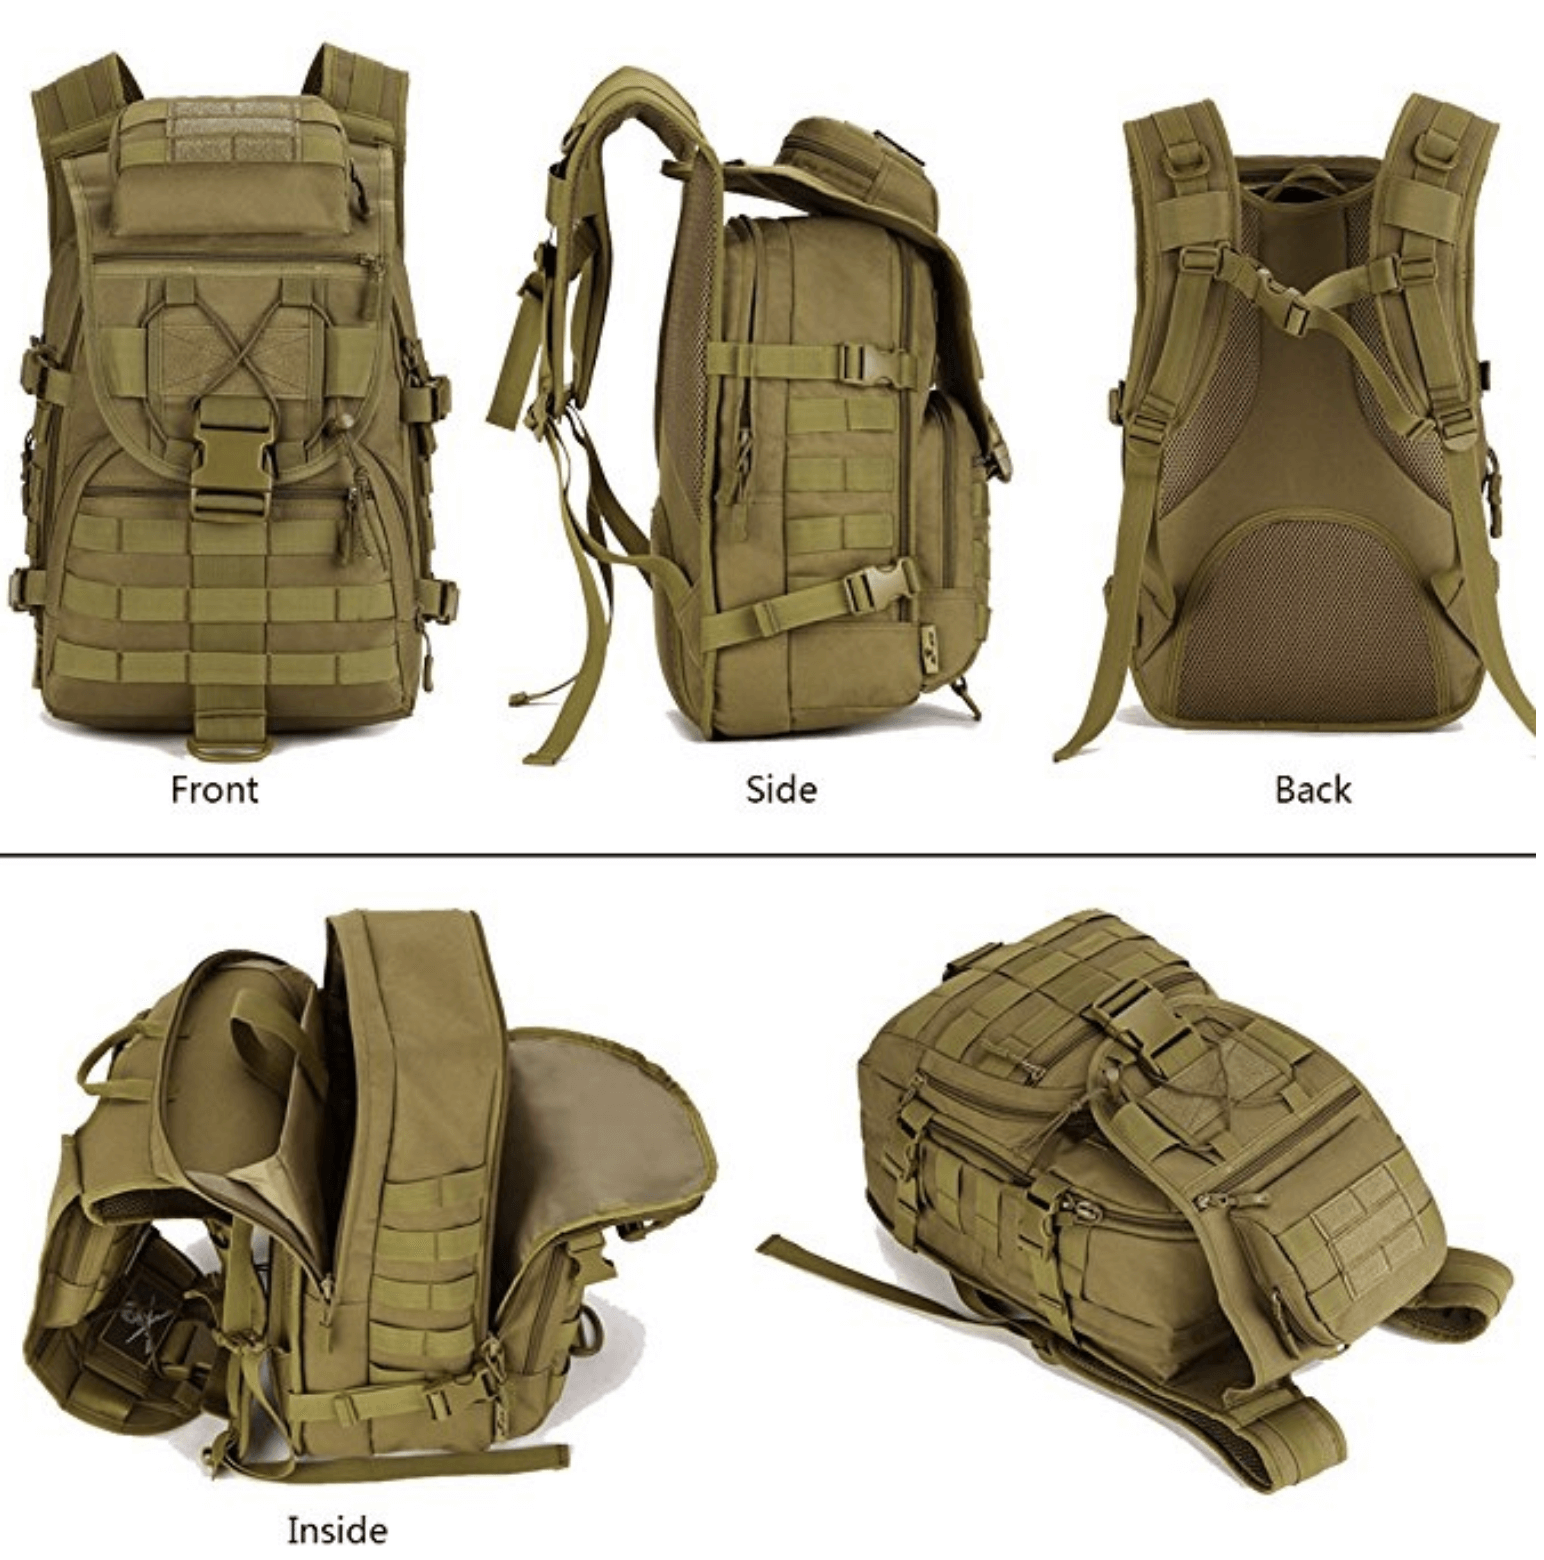 Tactical Backpack for Military, Bug Out Bag,